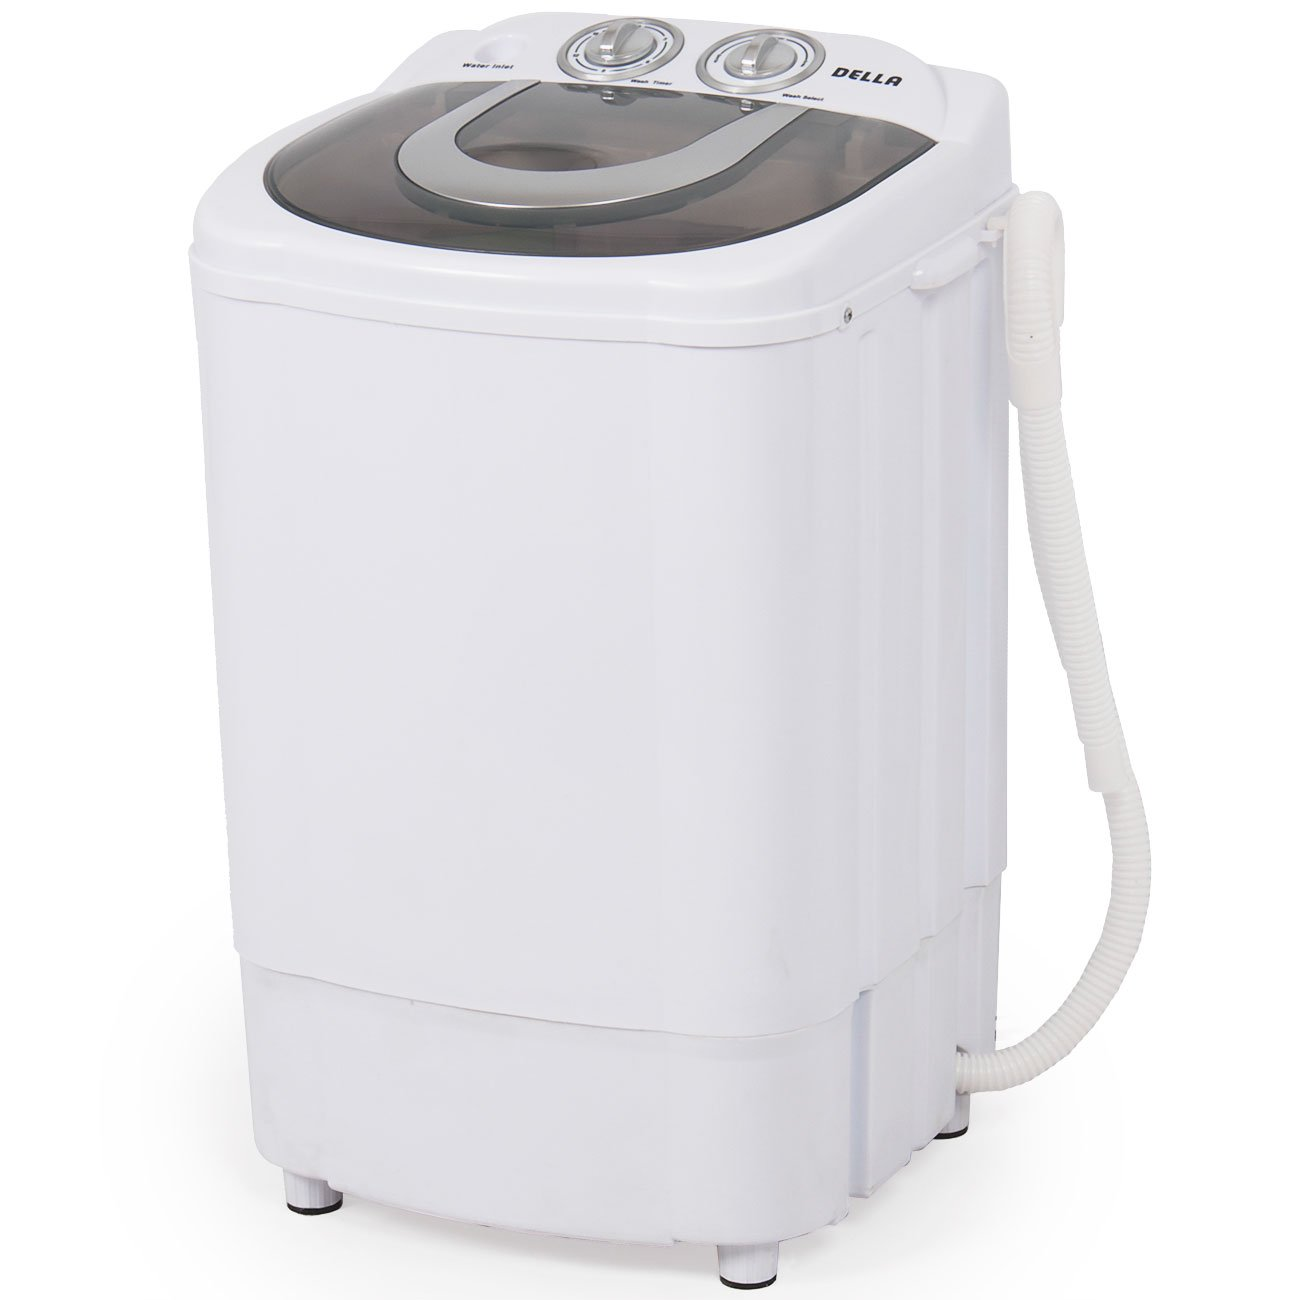 Amazon.com: Della Mini Portable Washing Machine Spin Wash 8.8 Lbs Capacity  Compact Laundry Washer For Clothes, Garments: Appliances